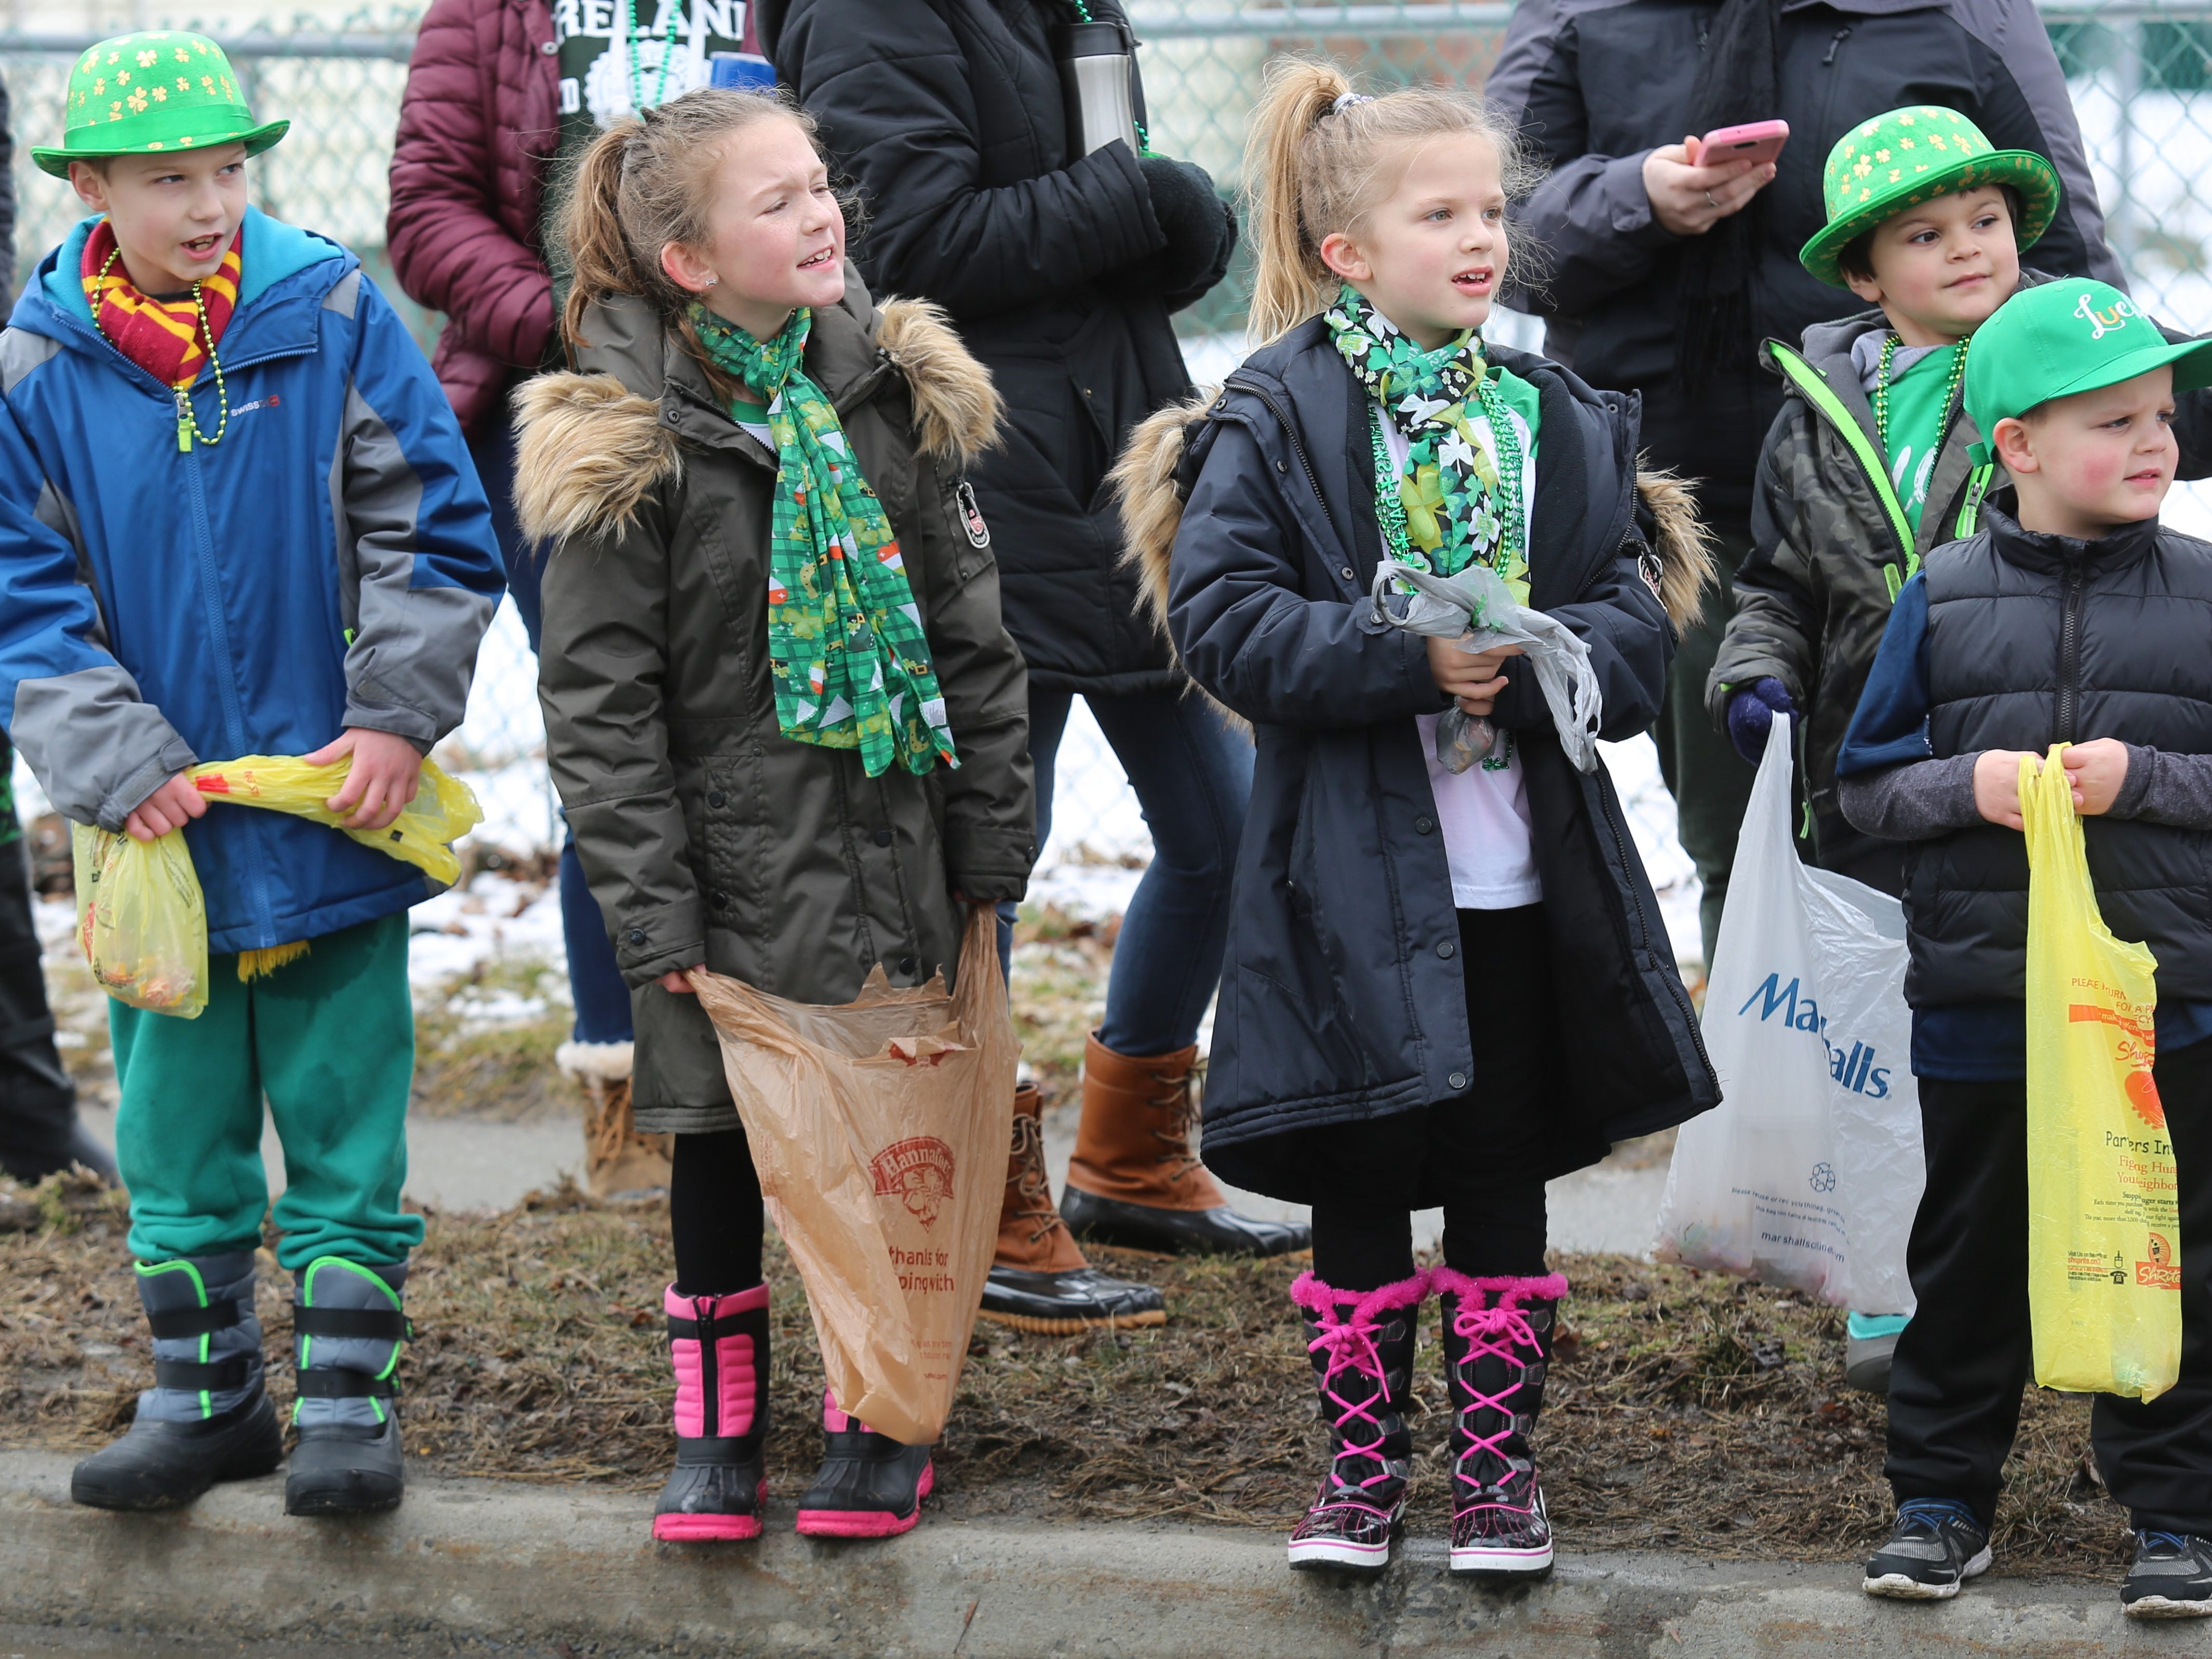 (from left to right) Derek Cogan, 8, Aubrey Cerone, 9, Braelynn Cerone, 7, Jaxson Torres, 4, and Ryan Knapp, 5, watch the Dutchess County St. Patrick's Day Parade pass by in Wappingers Falls on Saturday.